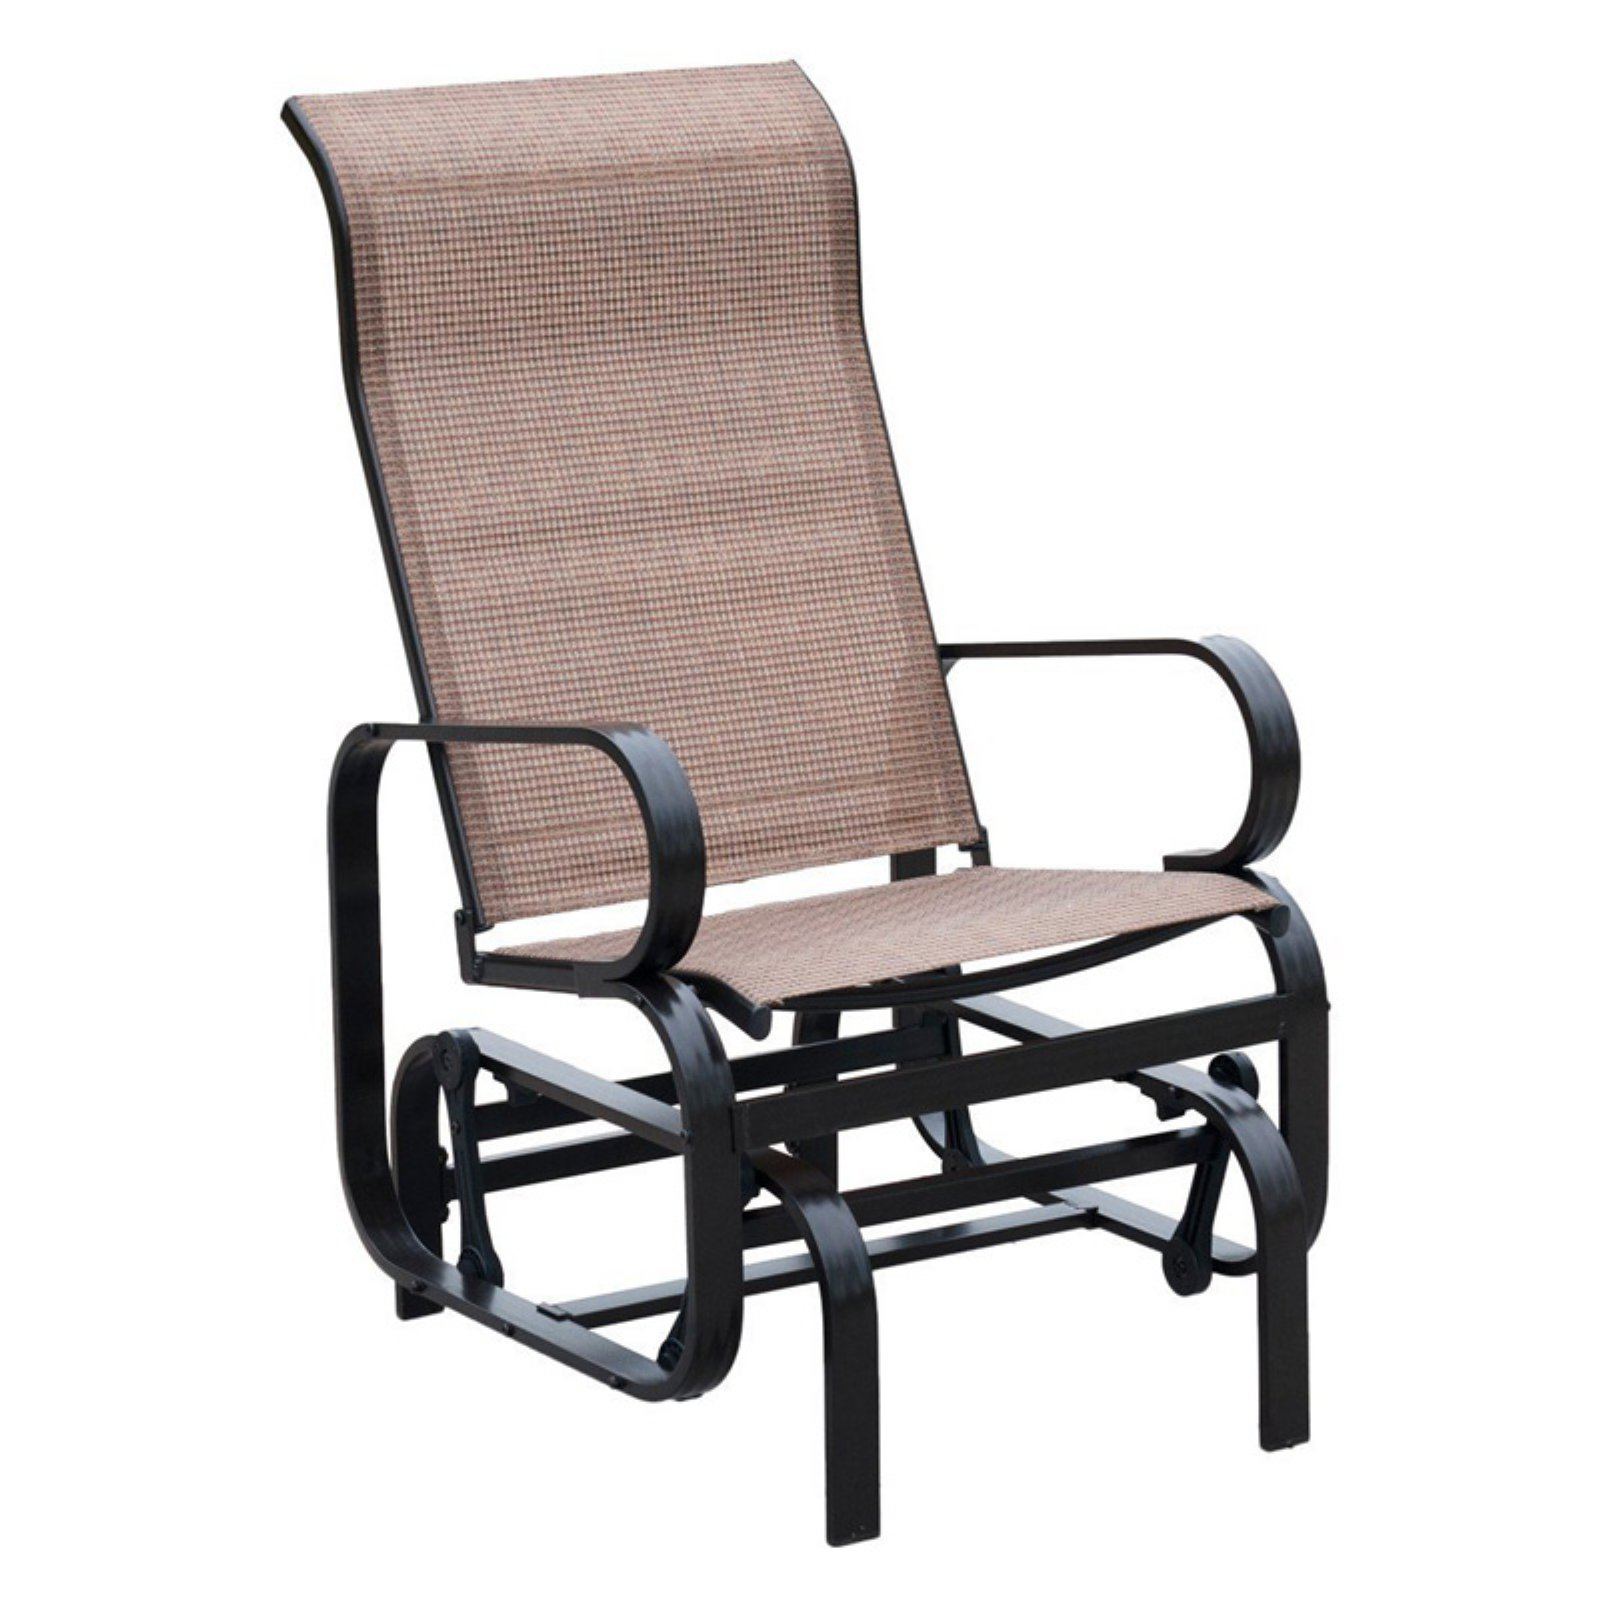 Best And Newest Chair Double Bates Crosley Swing Sofa Home Swivel Rocker In Outdoor Patio Swing Glider Bench Chair S (View 13 of 30)